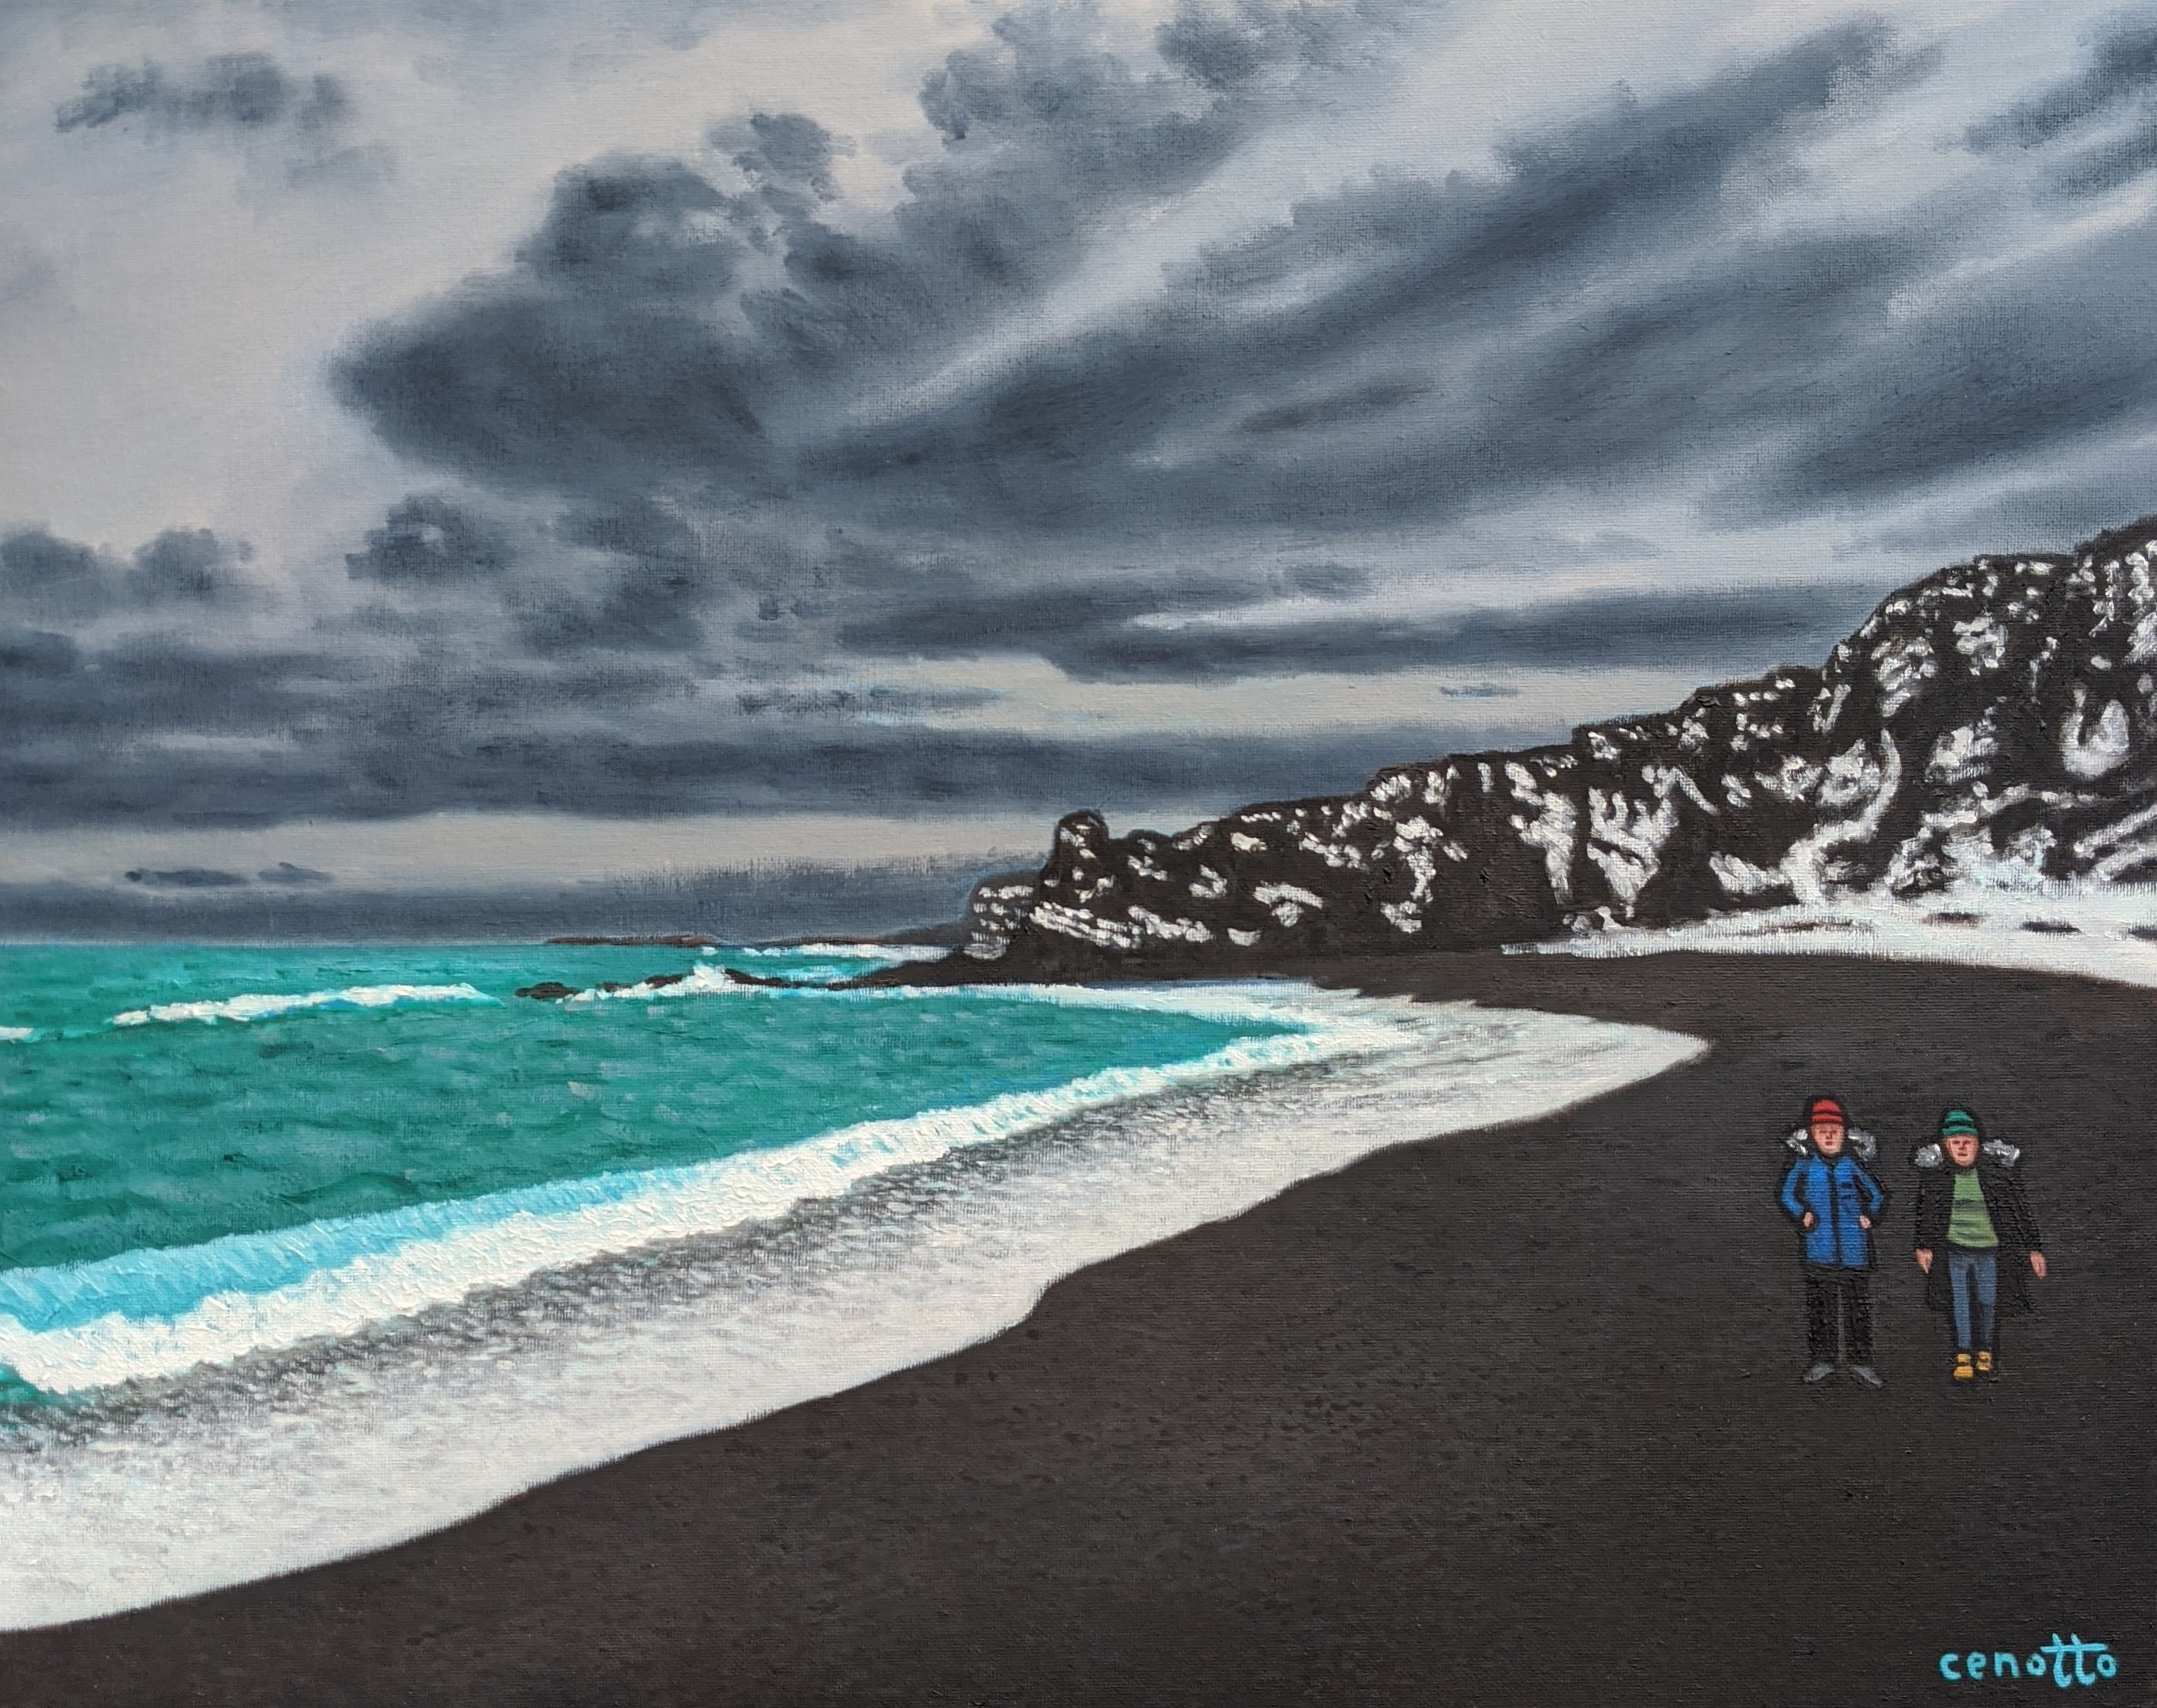 paint it black sand beach